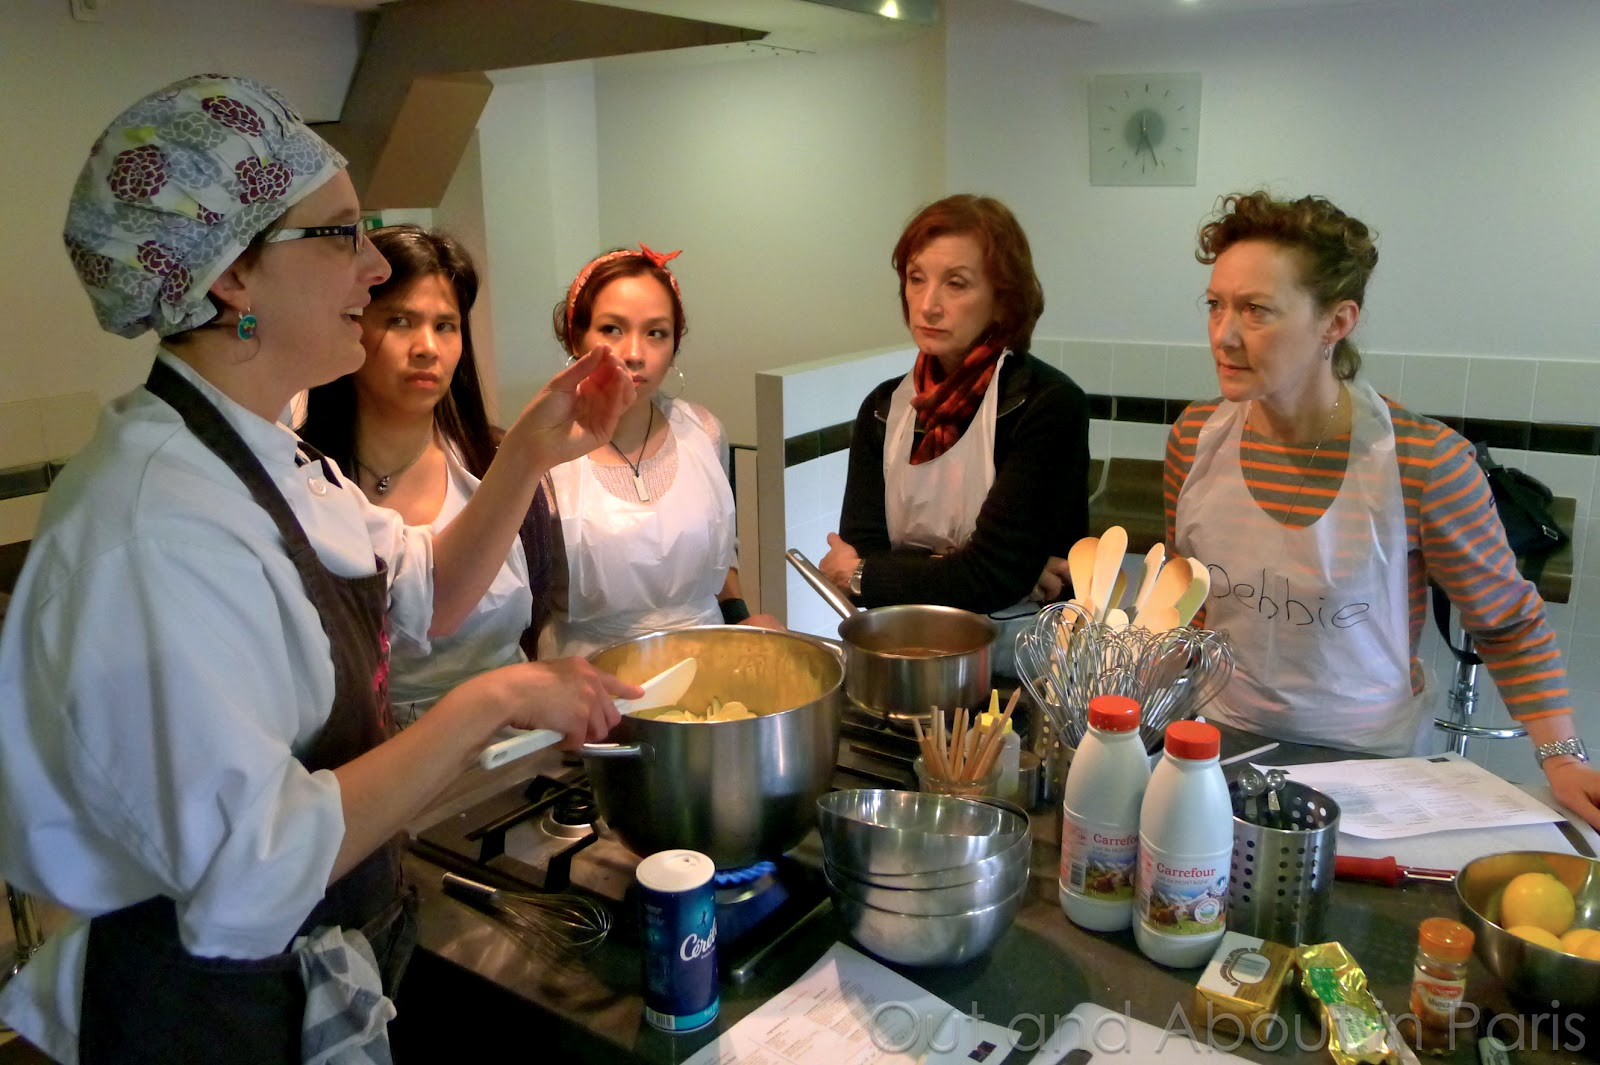 La Cuisine Paris La Cuisine Paris - Learning To Cook Like The French With